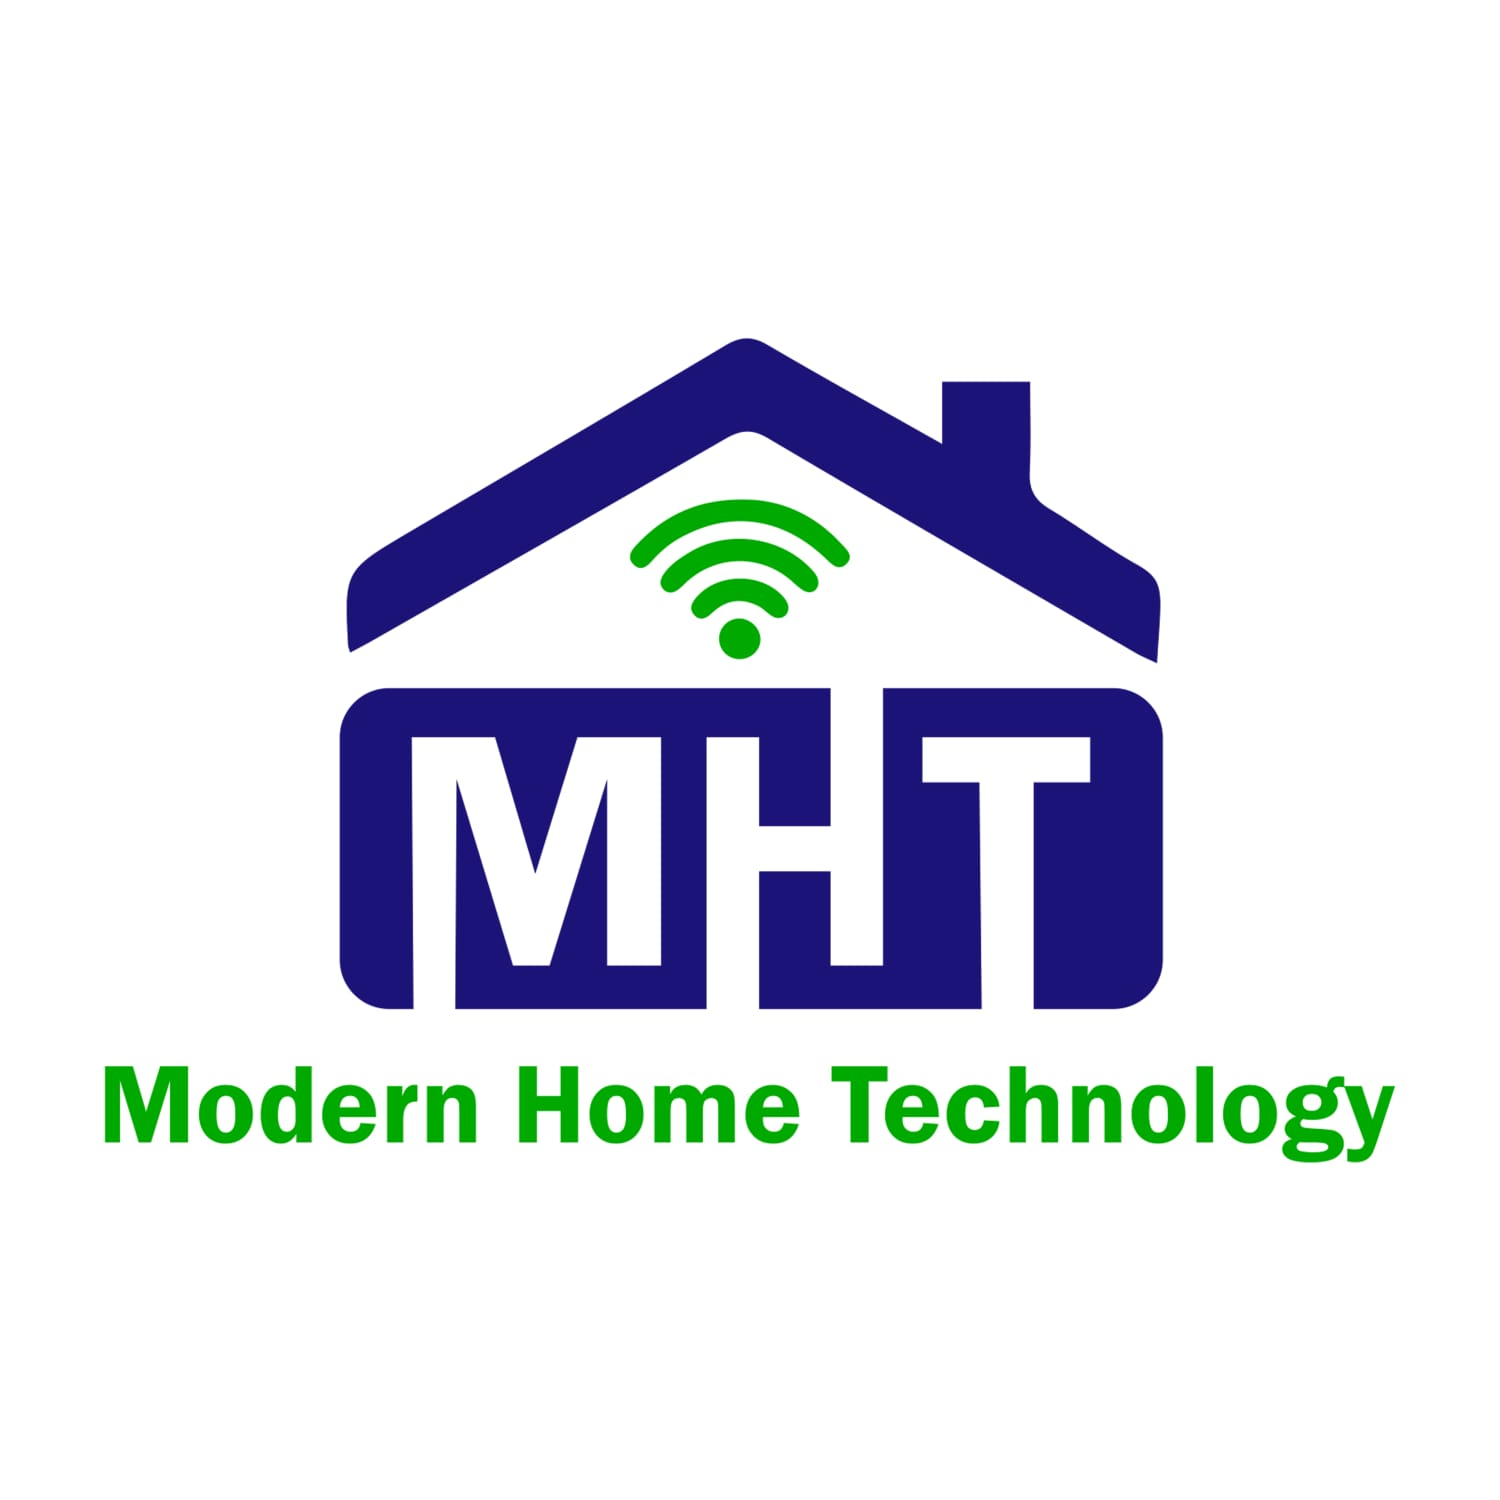 Modern Home Technology